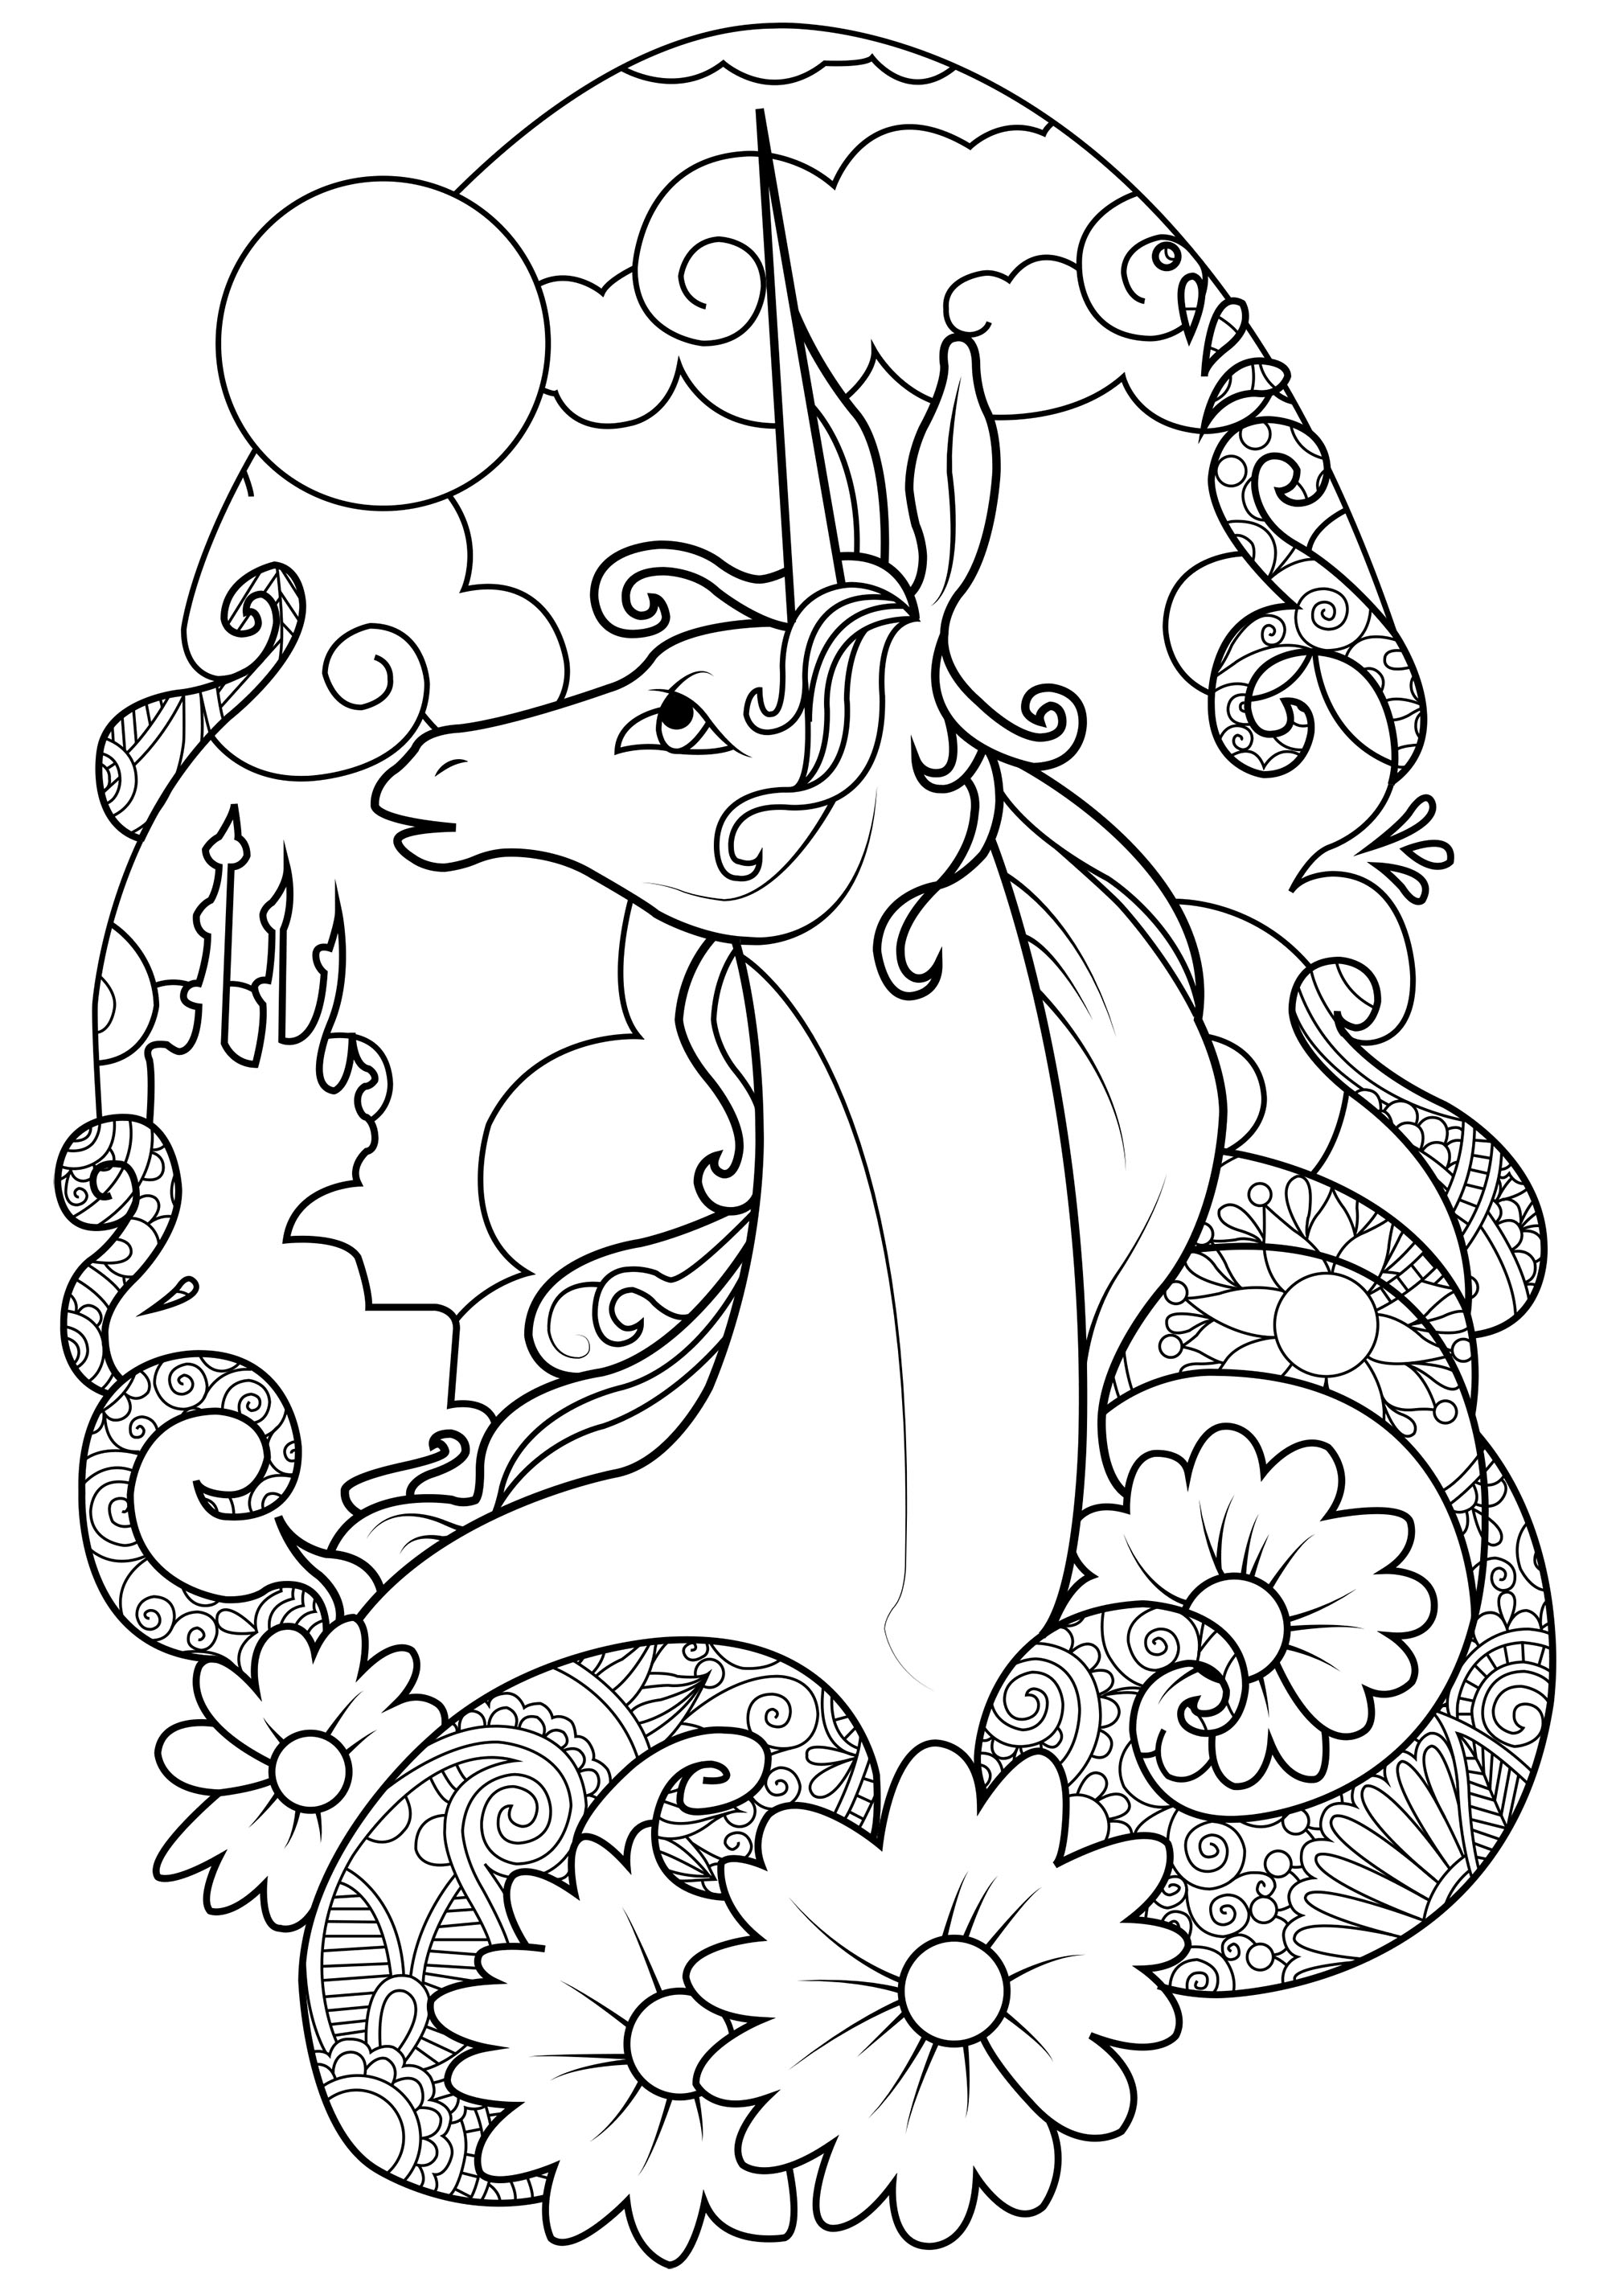 coloring sheet unicorn coloring pictures to print realistic unicorn coloring pages coloring home sheet to unicorn coloring coloring pictures print